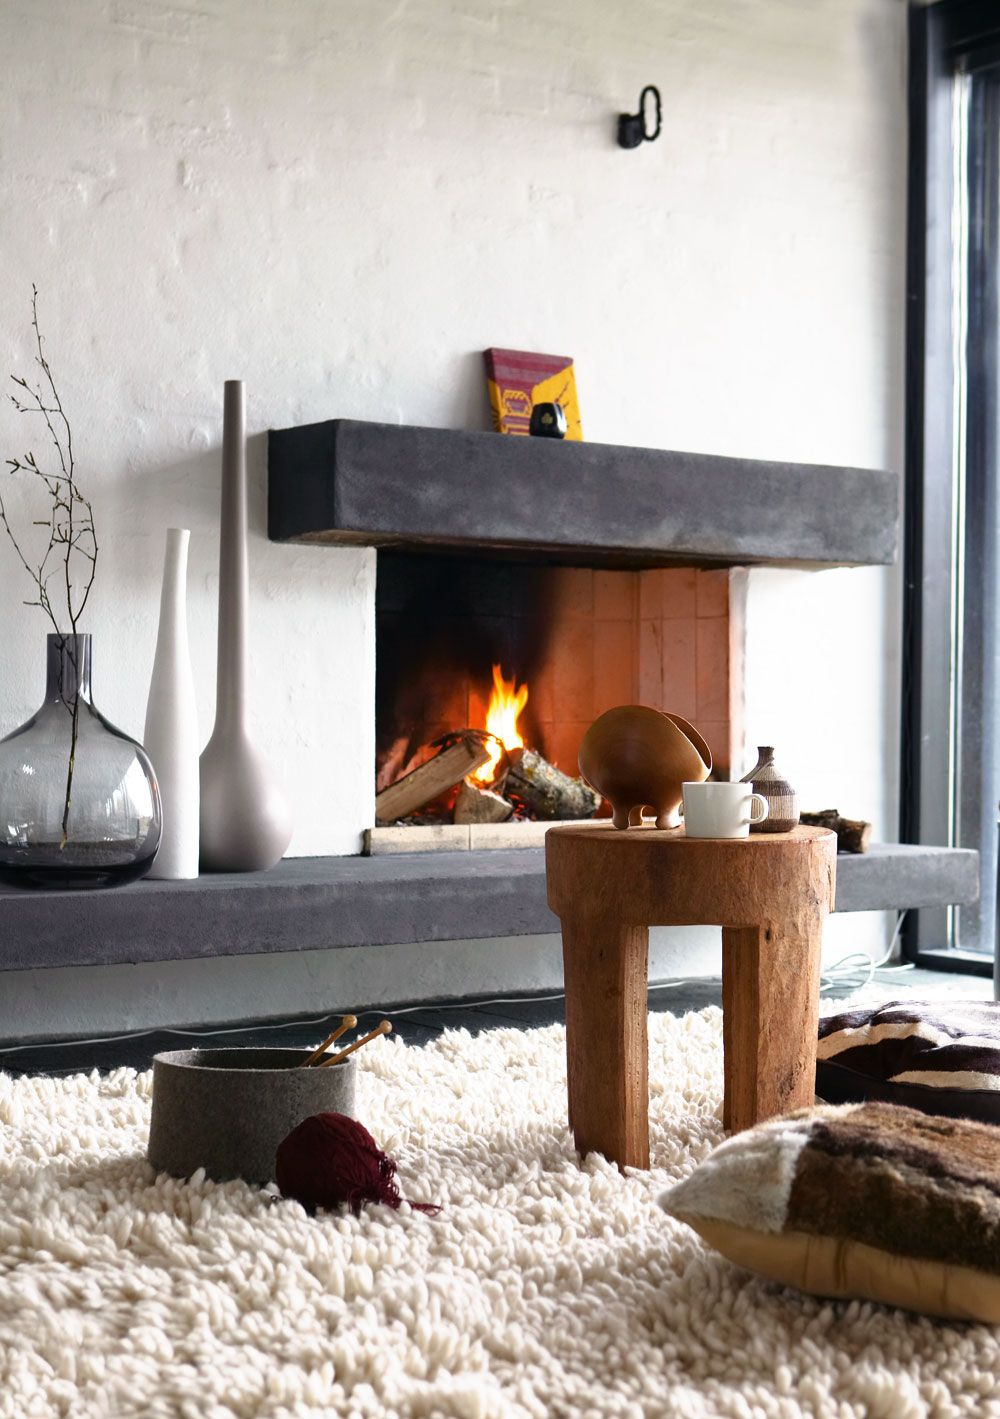 Modern Rustic Interior Fireplace Rug Wooden Stool Modern